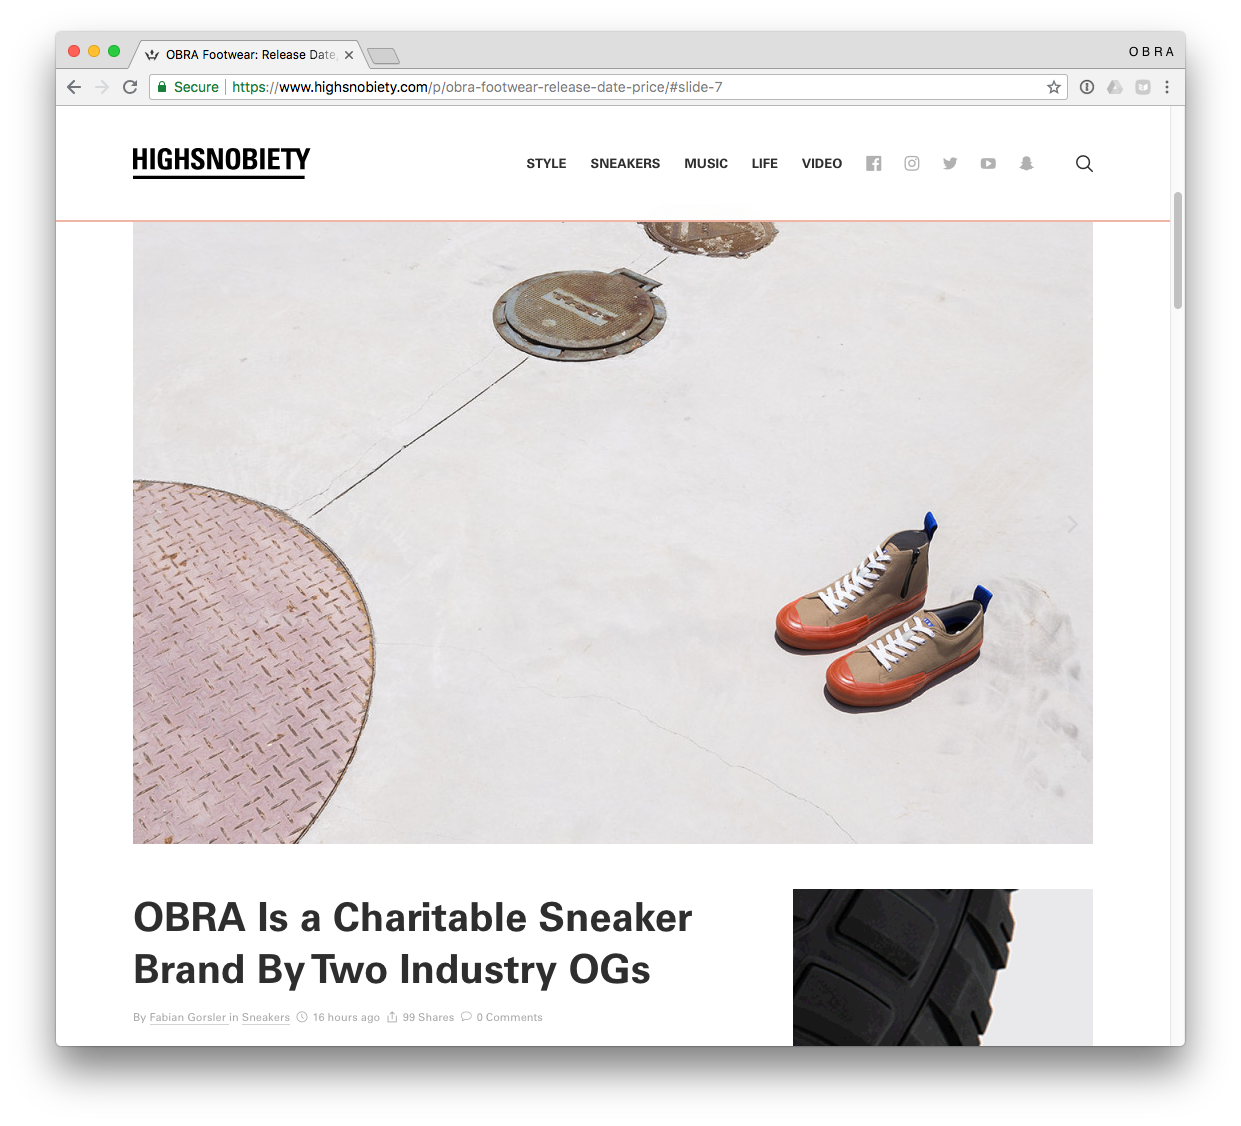 OBRA FEATURED ON HIGHSNOBIETY SEPTEMBER 2018